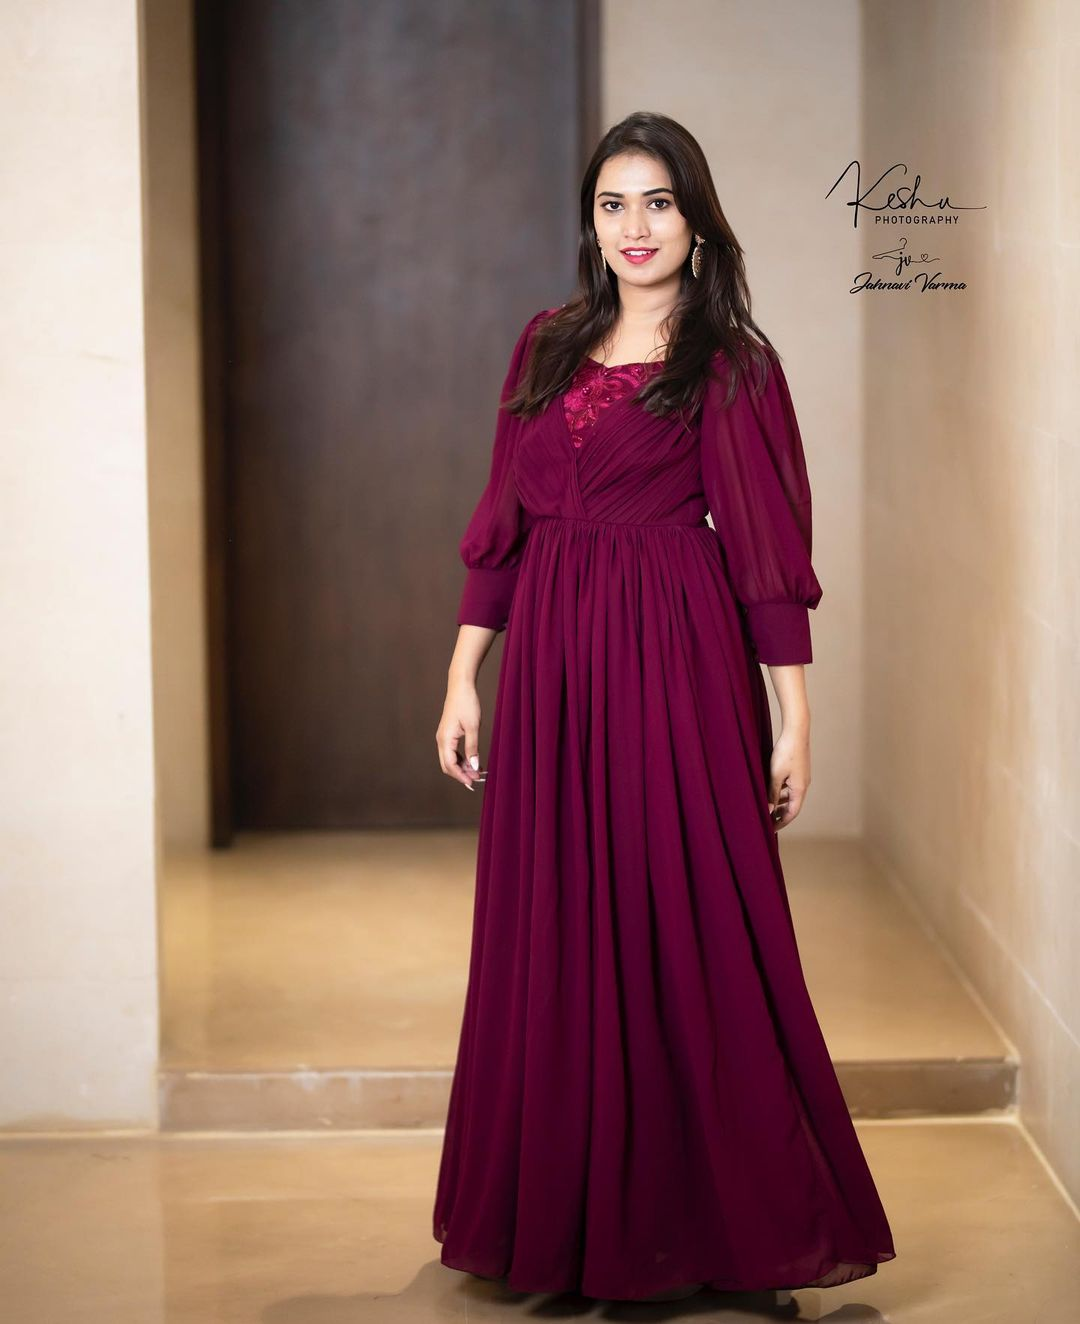 Valentine Wine .  Yet another classy and stylish wine georgette gown from collection of statement gowns .  Grab this gown that looks appealing to pull off to any event. Colour and design customisations available.  In frame : Honey Reddy. Clicked by : keshu. 2021-07-29